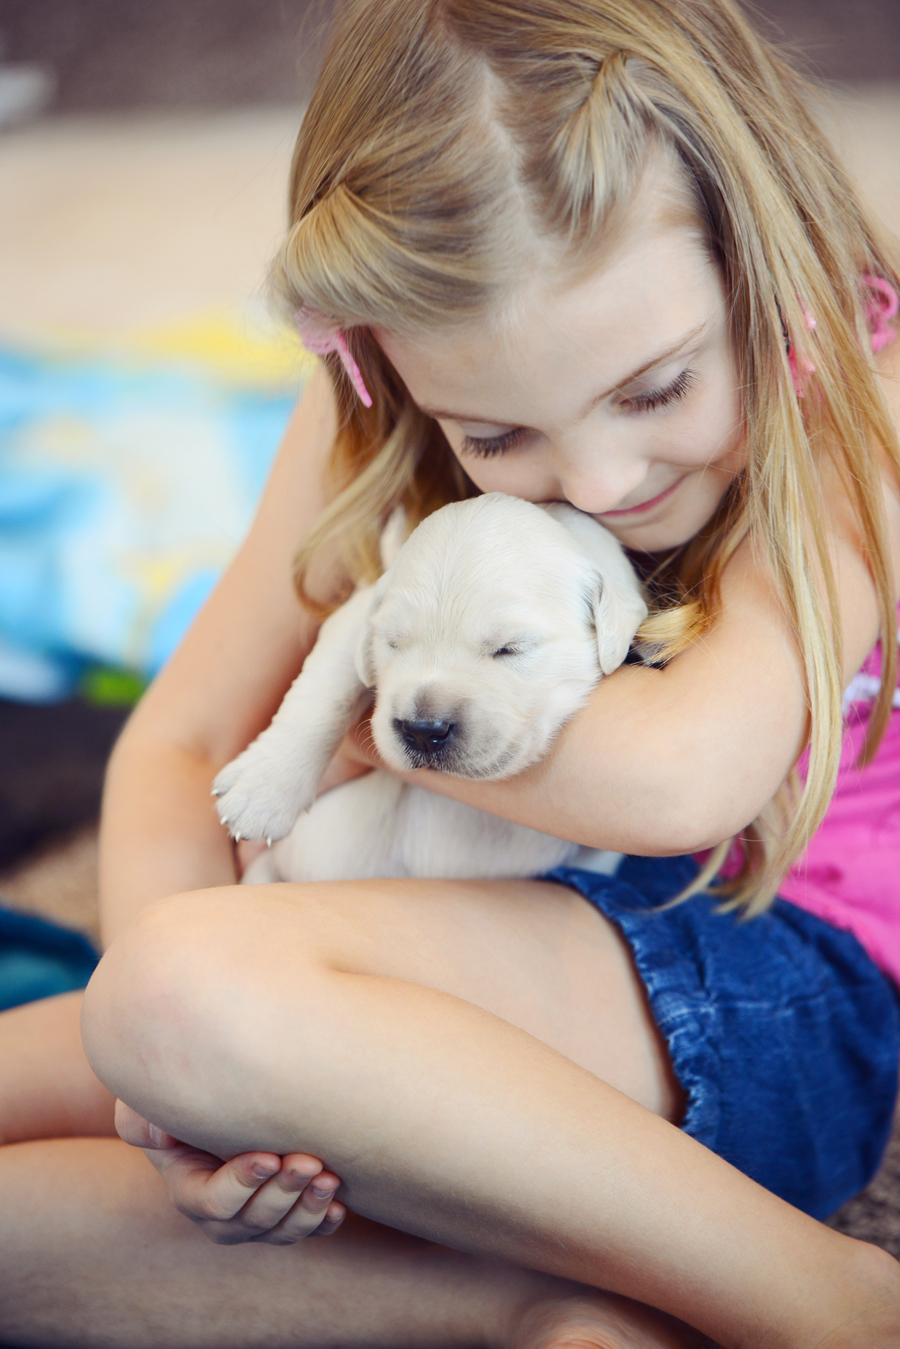 daughter holding puppy